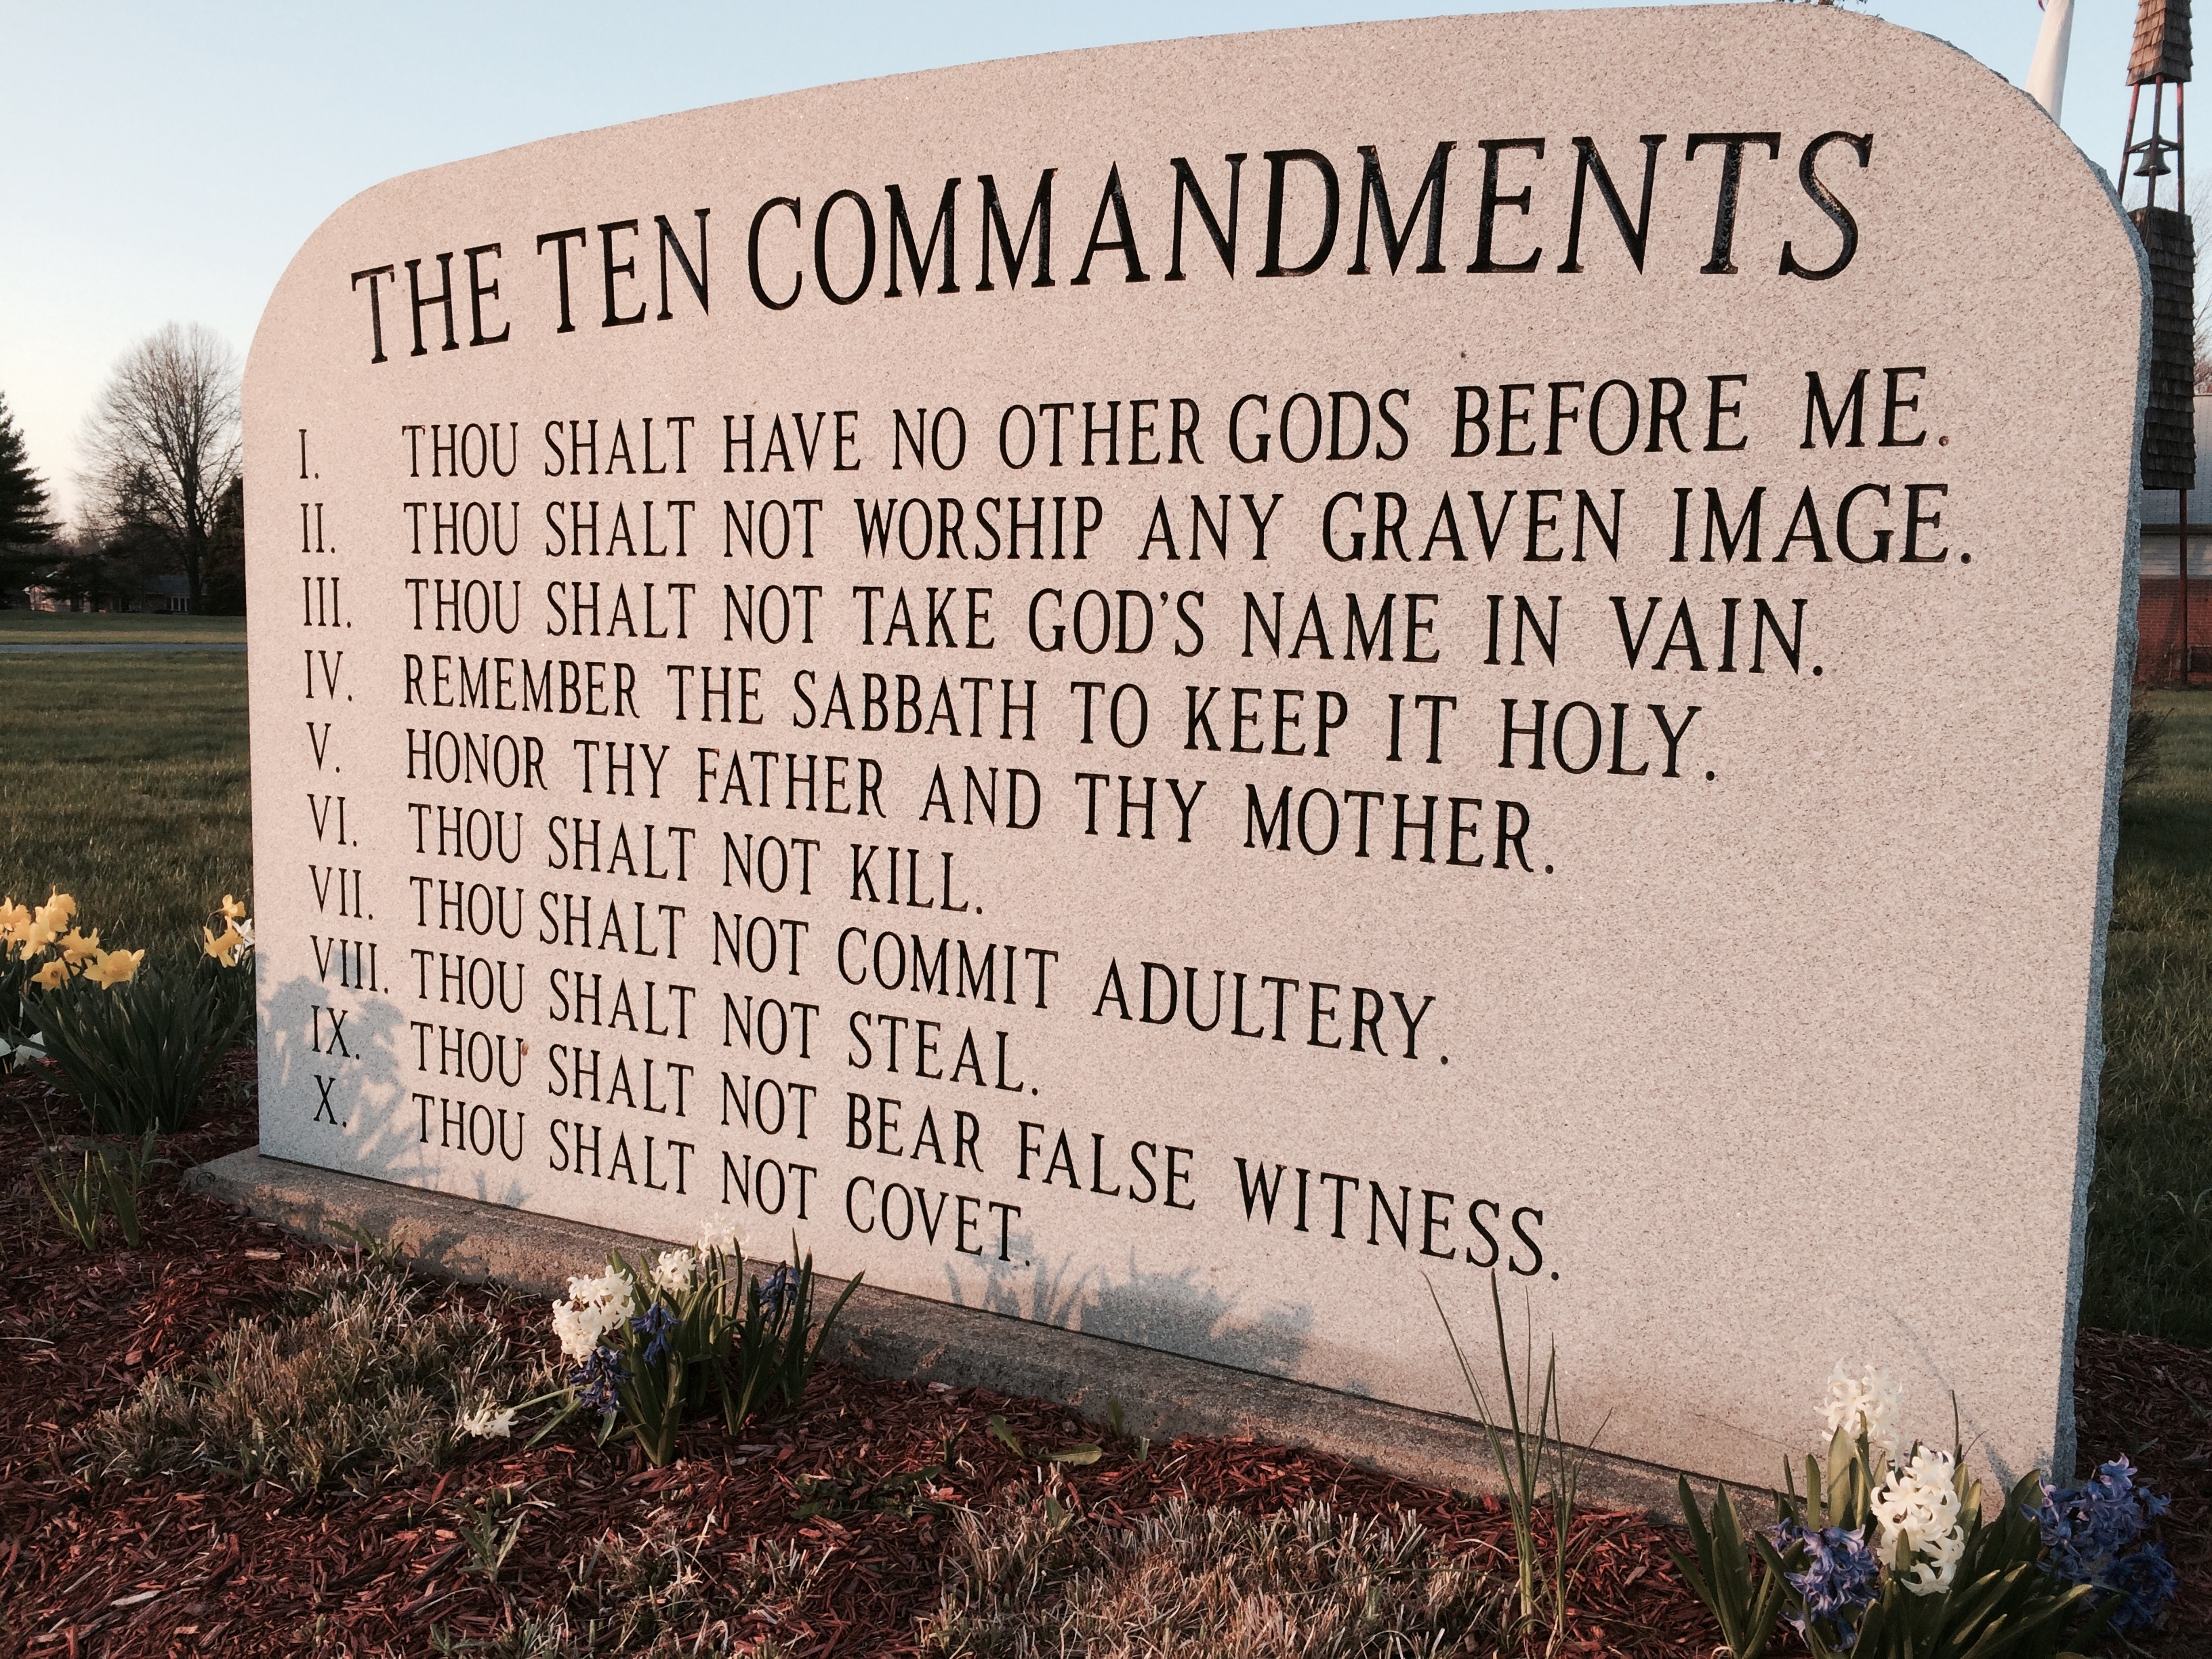 Ten Commandments - Wikipedia